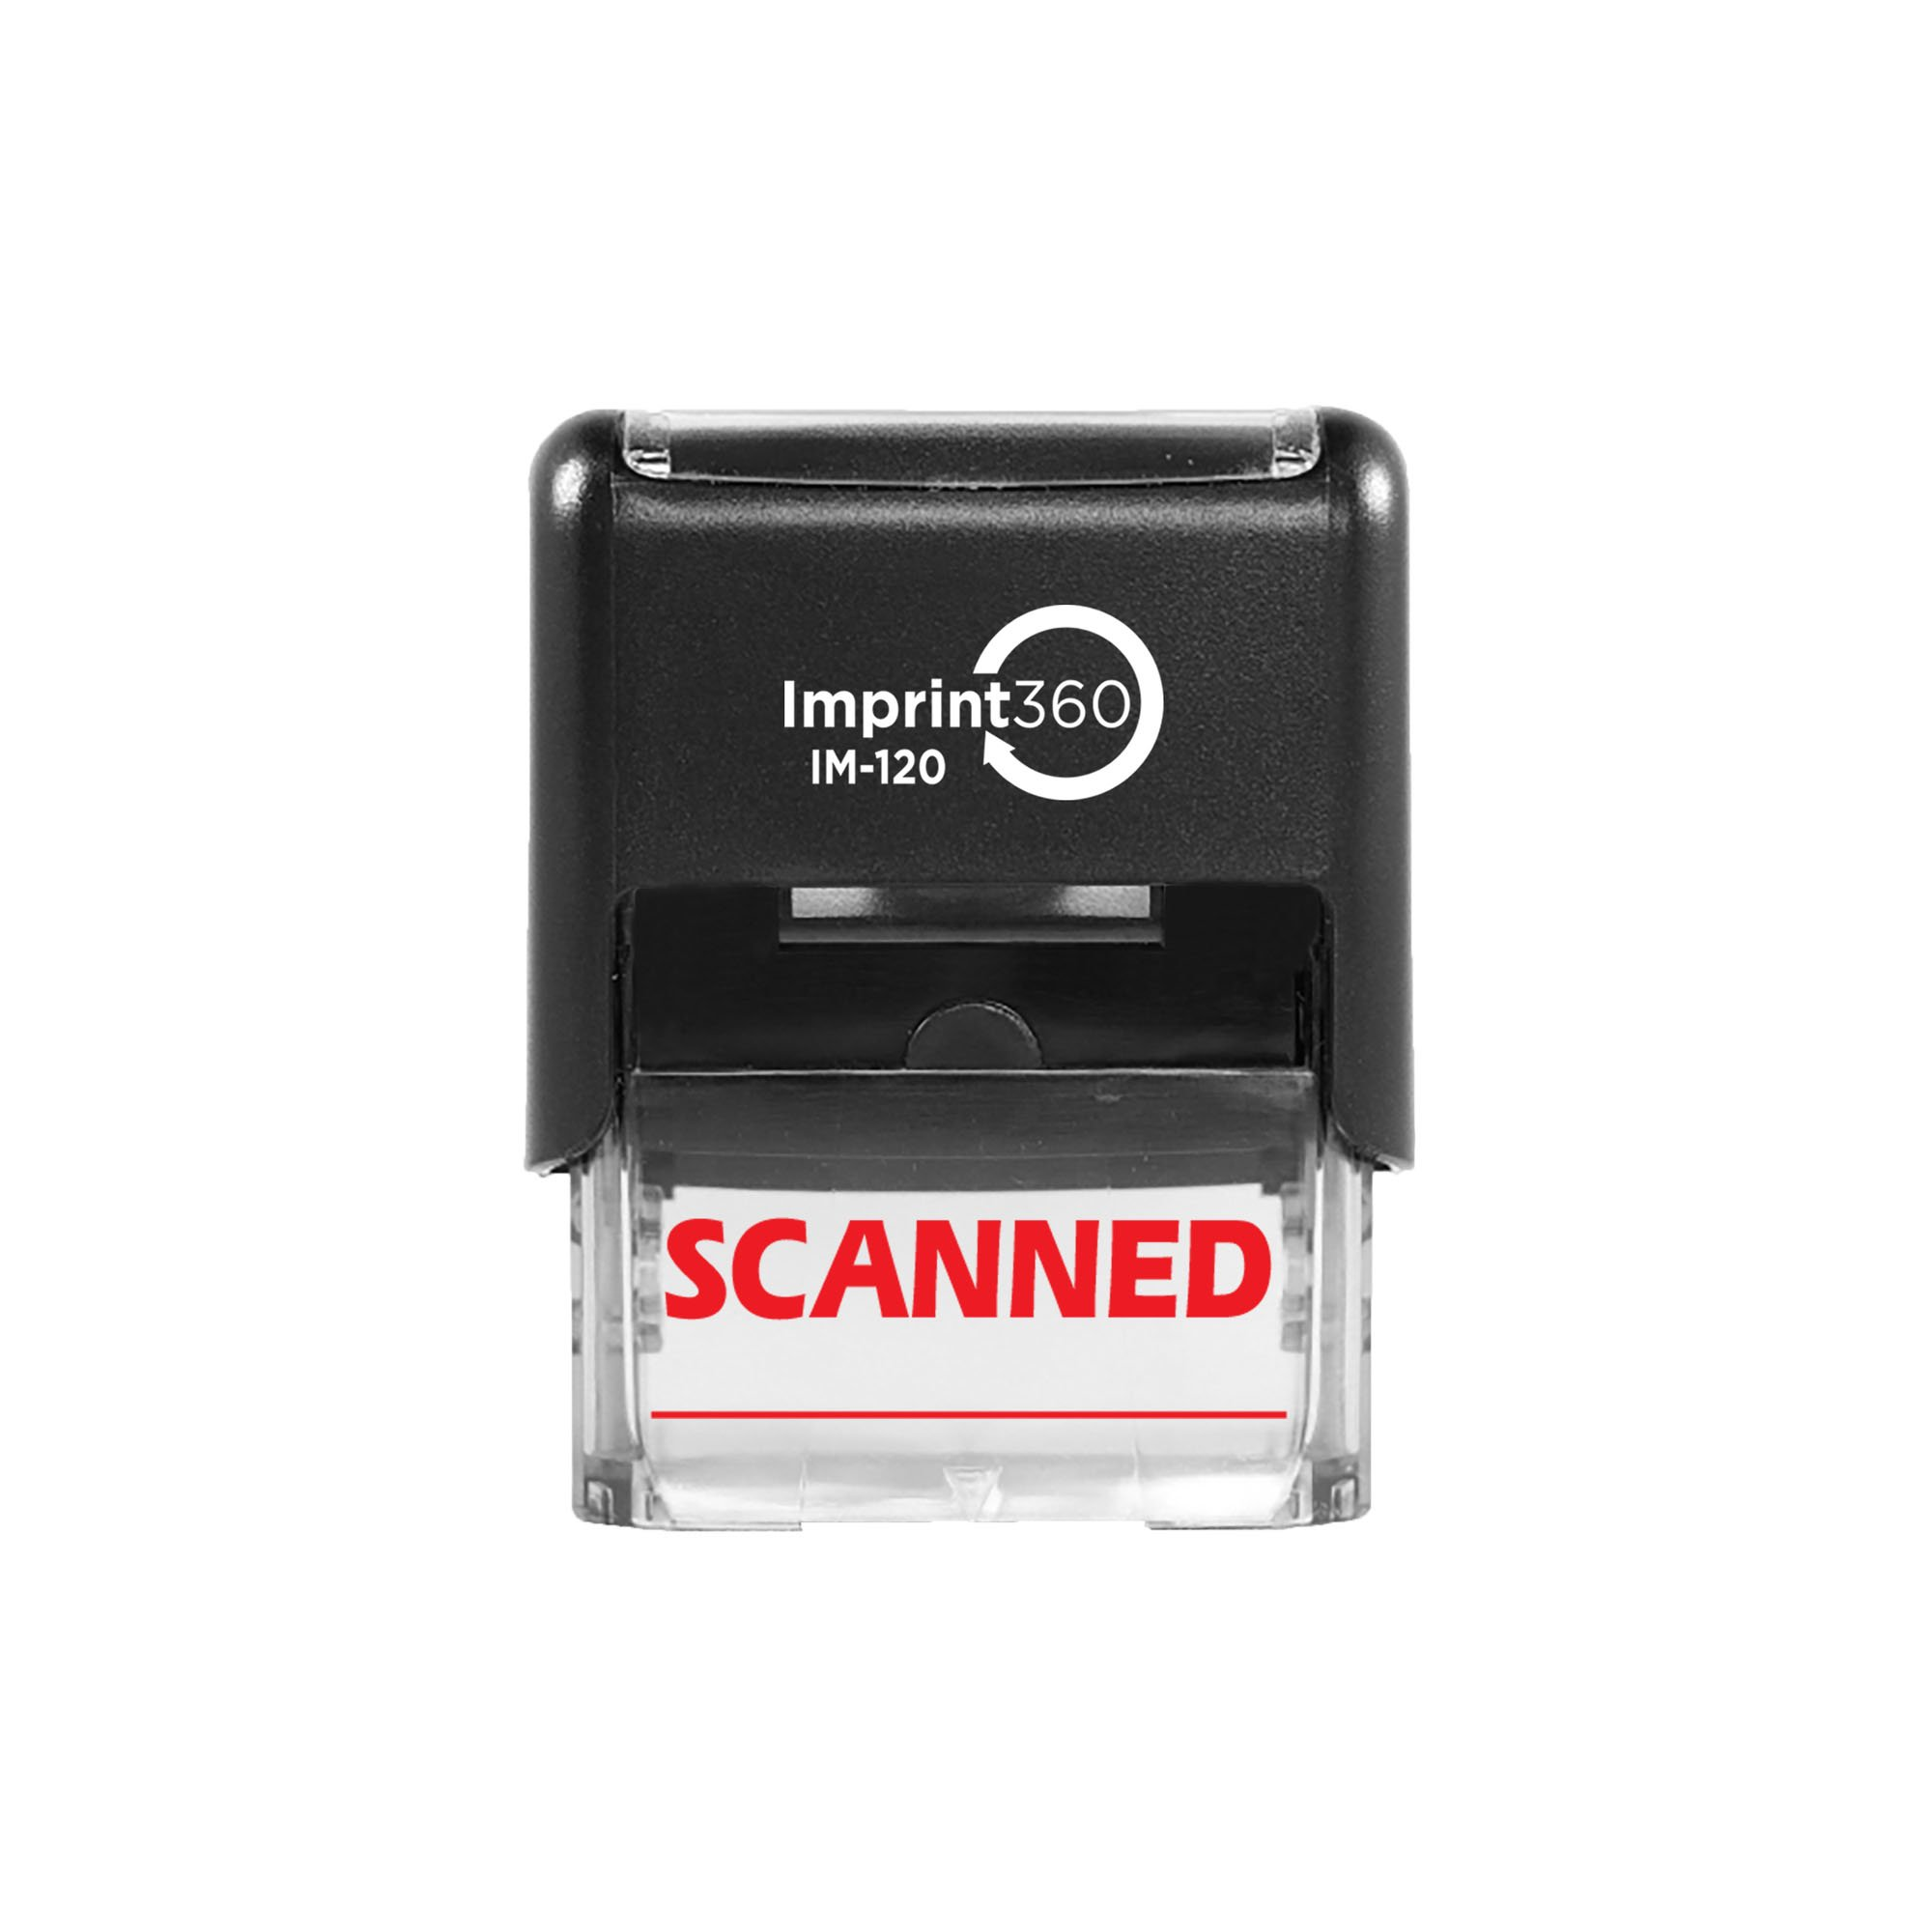 """Imprint 360 AS-IMP1018 - Scanned w/Signature Line, Heavy Duty Commerical Quality Self-Inking Rubber Stamp, Red Ink, 9/16"""" x 1-1/2"""" Impression Size, Laser Engraved for Clean, Precise Imprints"""